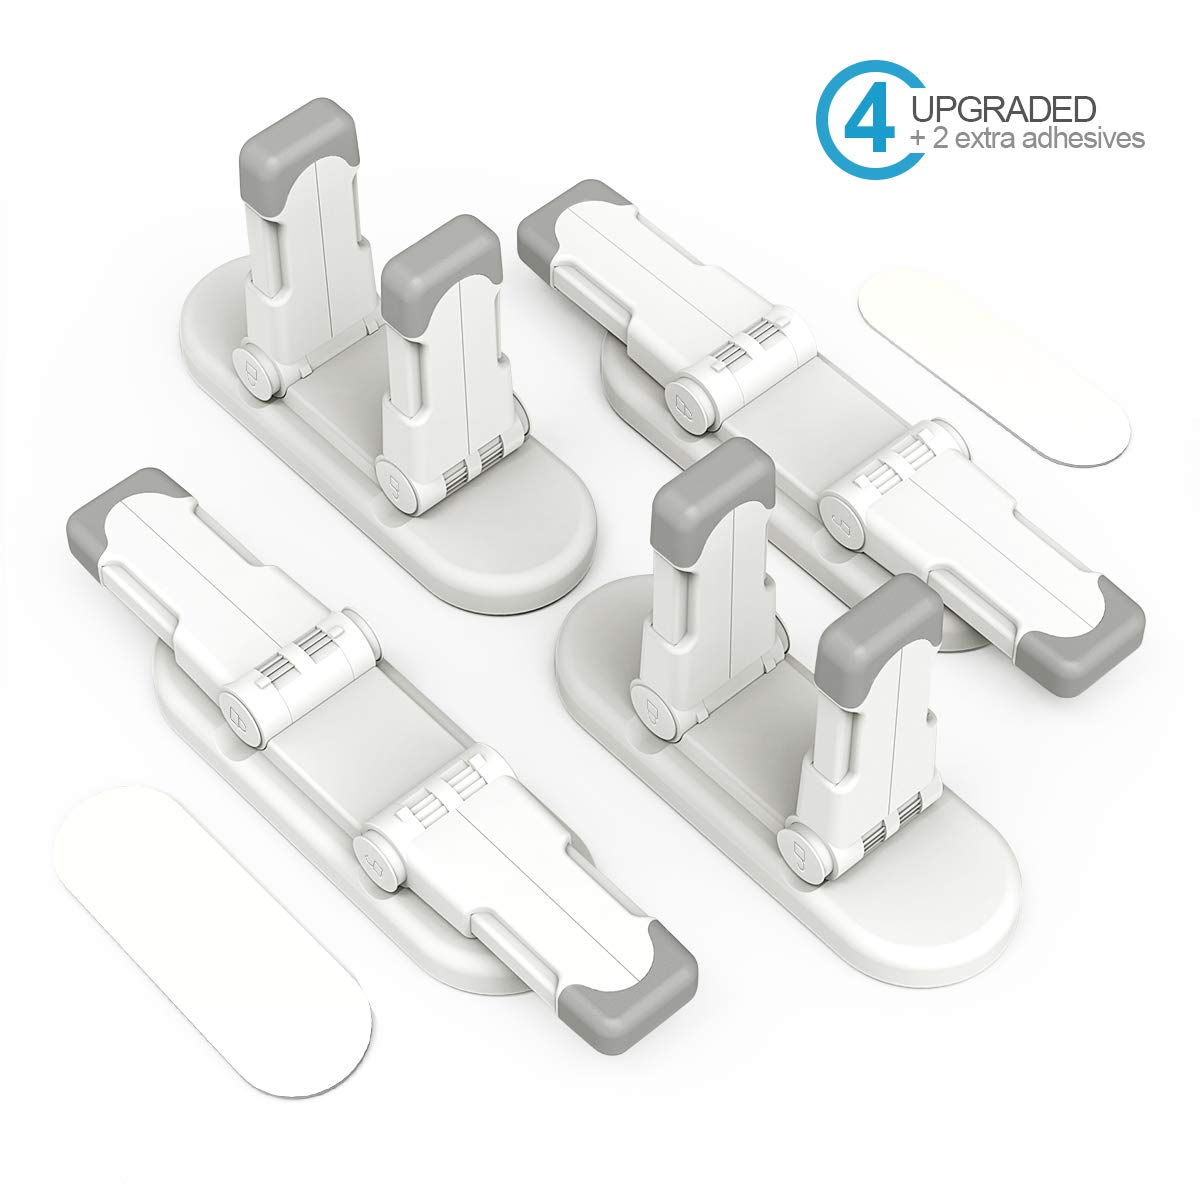 ABTOR Child Safety Door Lever Lock, 4 Pack Upgraded Child Proof Door Handle Lock Double Locks Design with Adhesive Tool-Free Installation Prevent Kids from Opening the Door